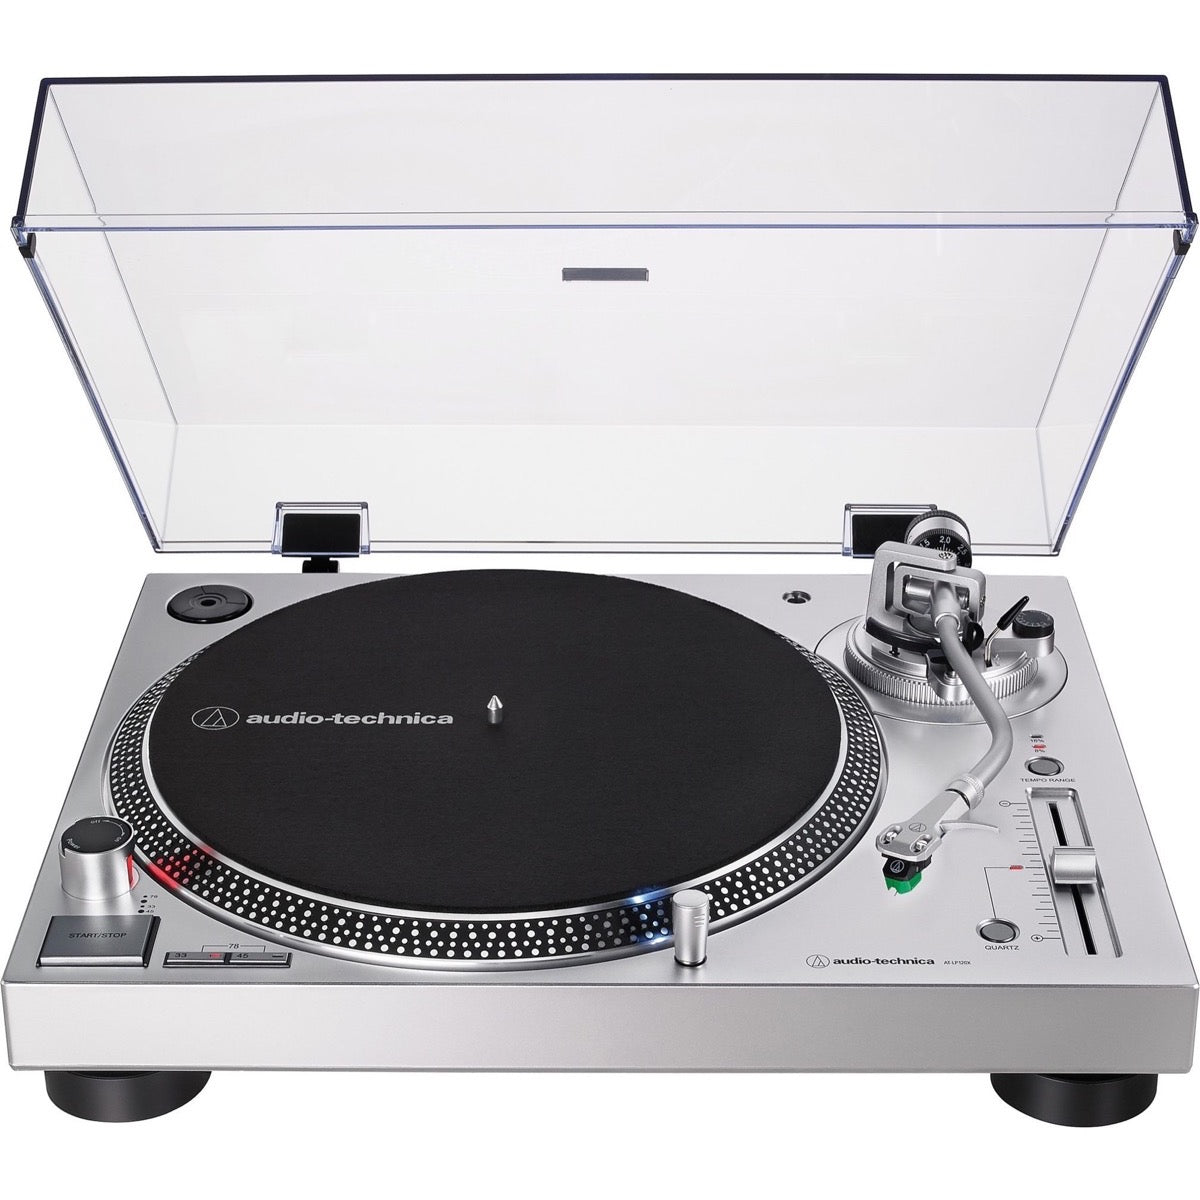 Audio-Technica AT-LP120XUSB Direct-Drive Turntable, Silver